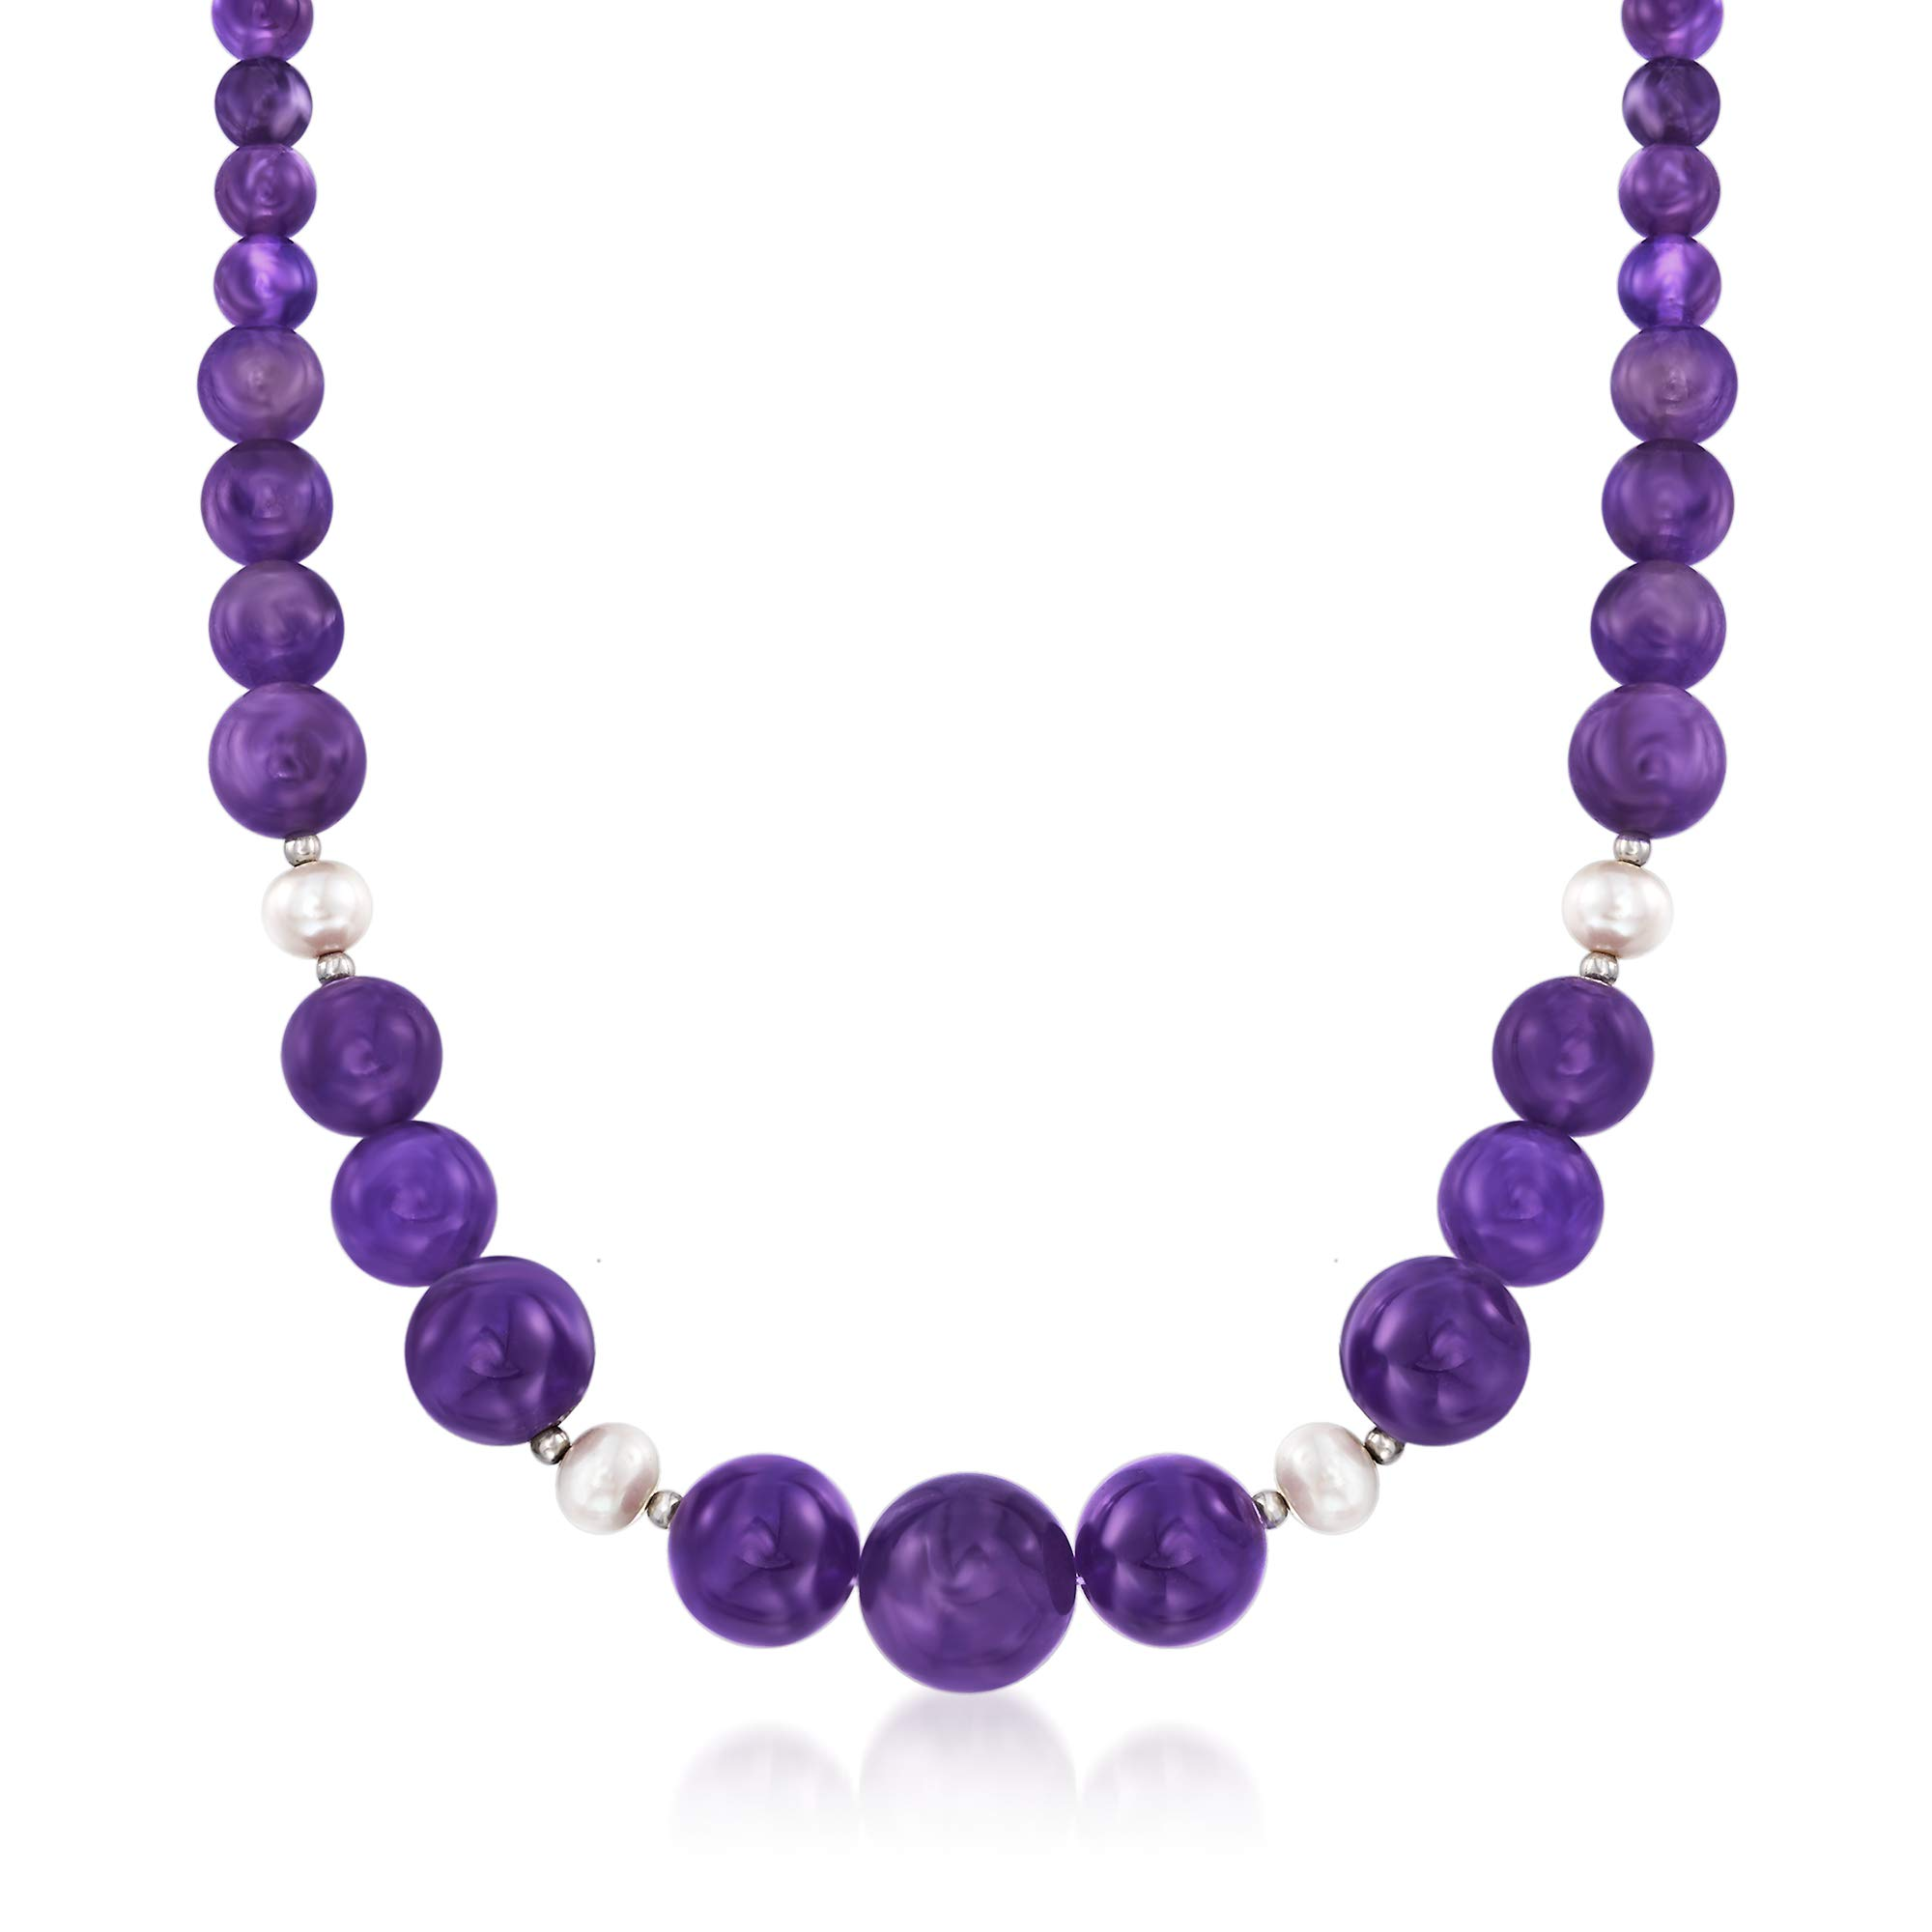 Ross-Simons 4-16mm Amethyst Bead and 8-9mm Cultured Pearl Necklace With Sterling Silver